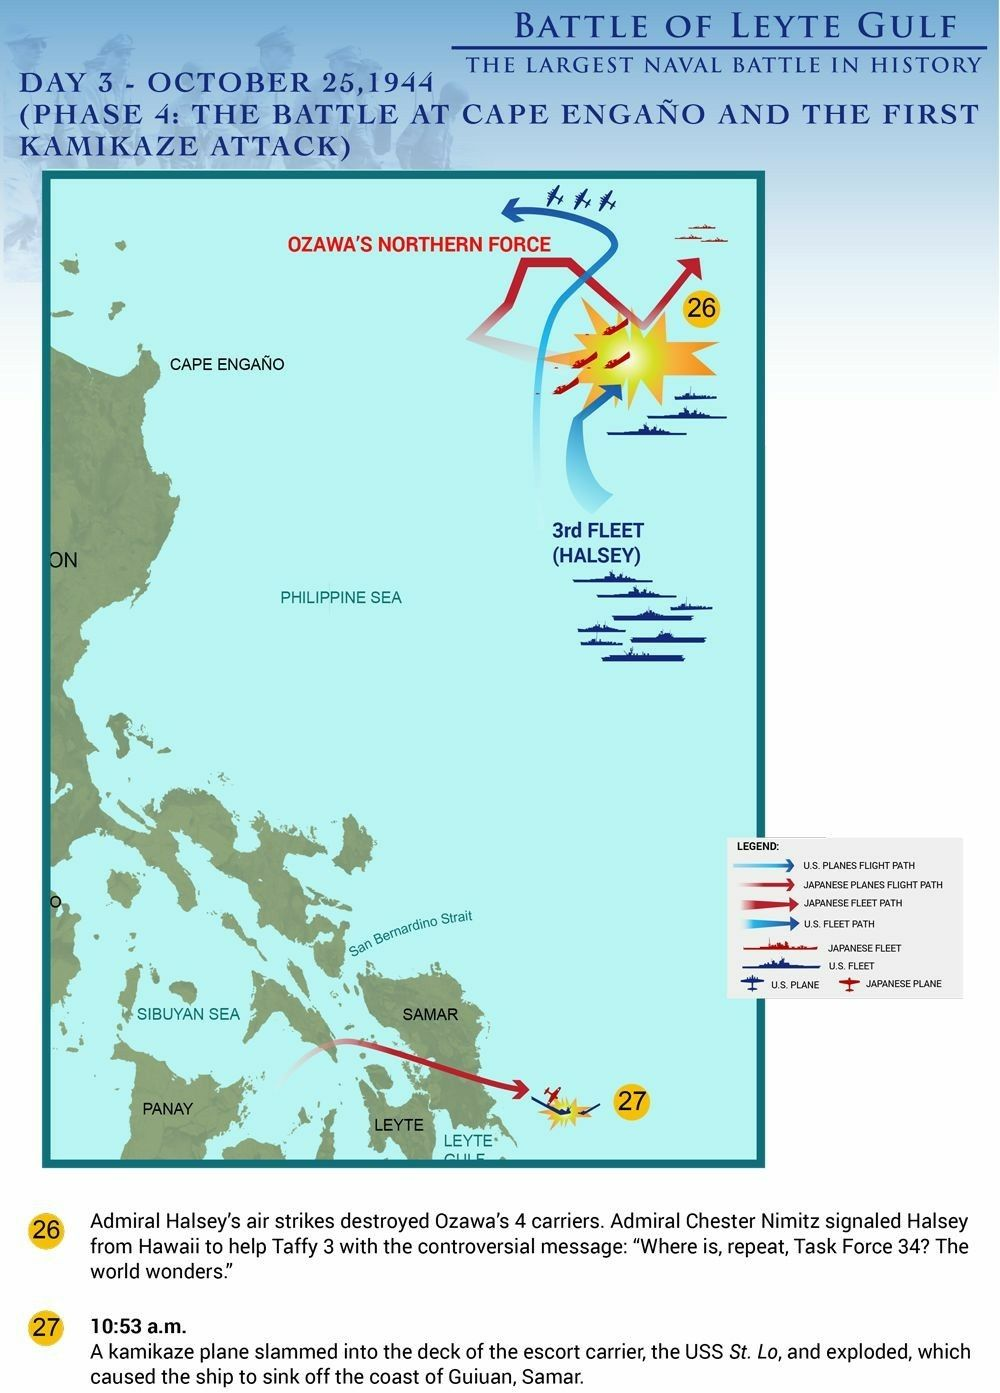 Pin by radialv on Battle and War Diagrams | Leyte, Battle